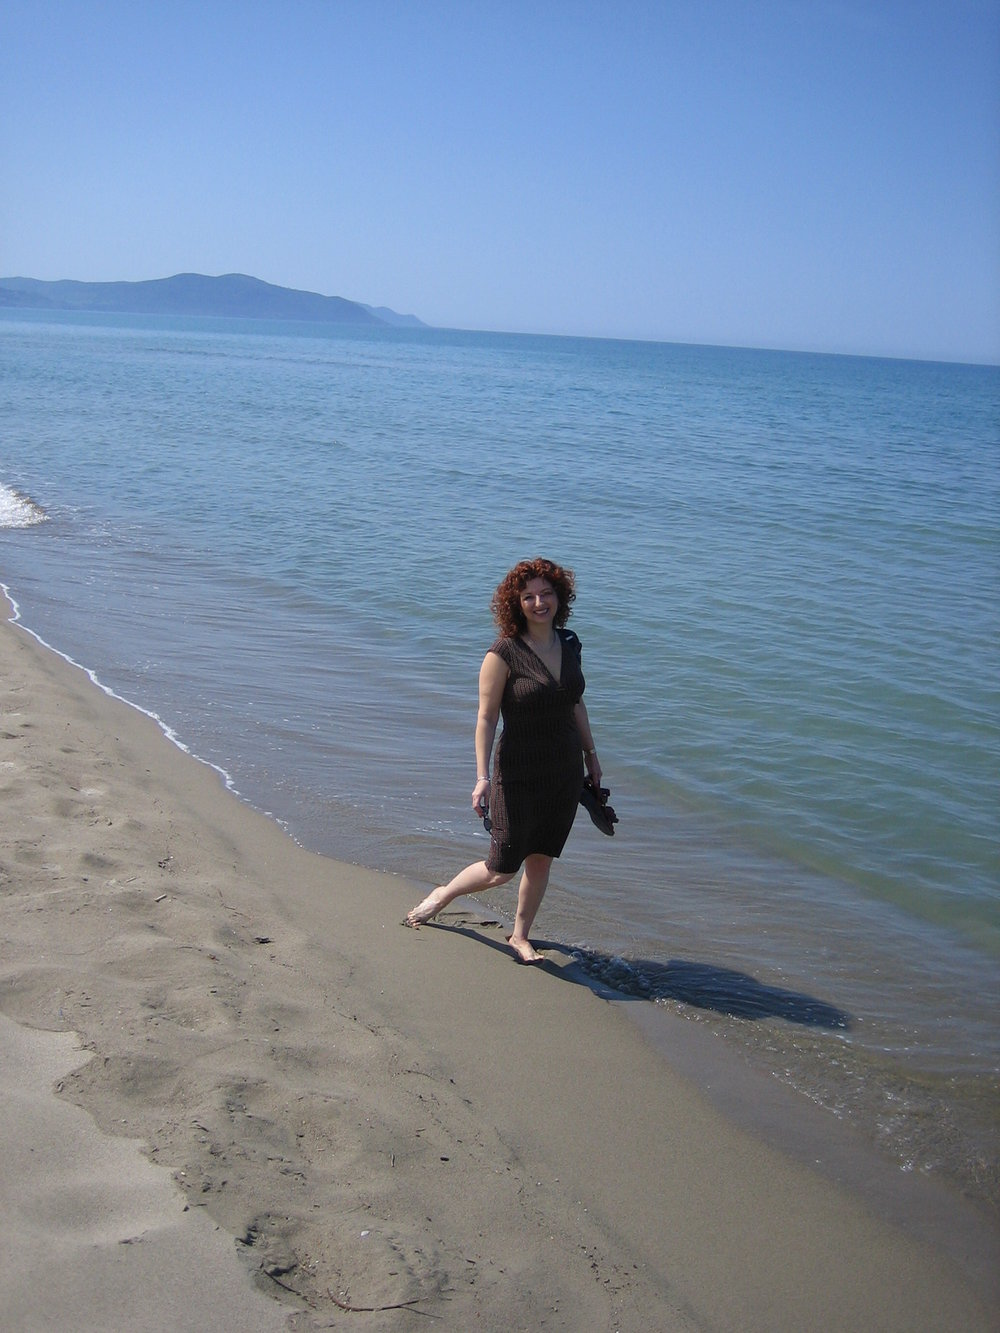 Walking on the empy beach, Paestum, Italy